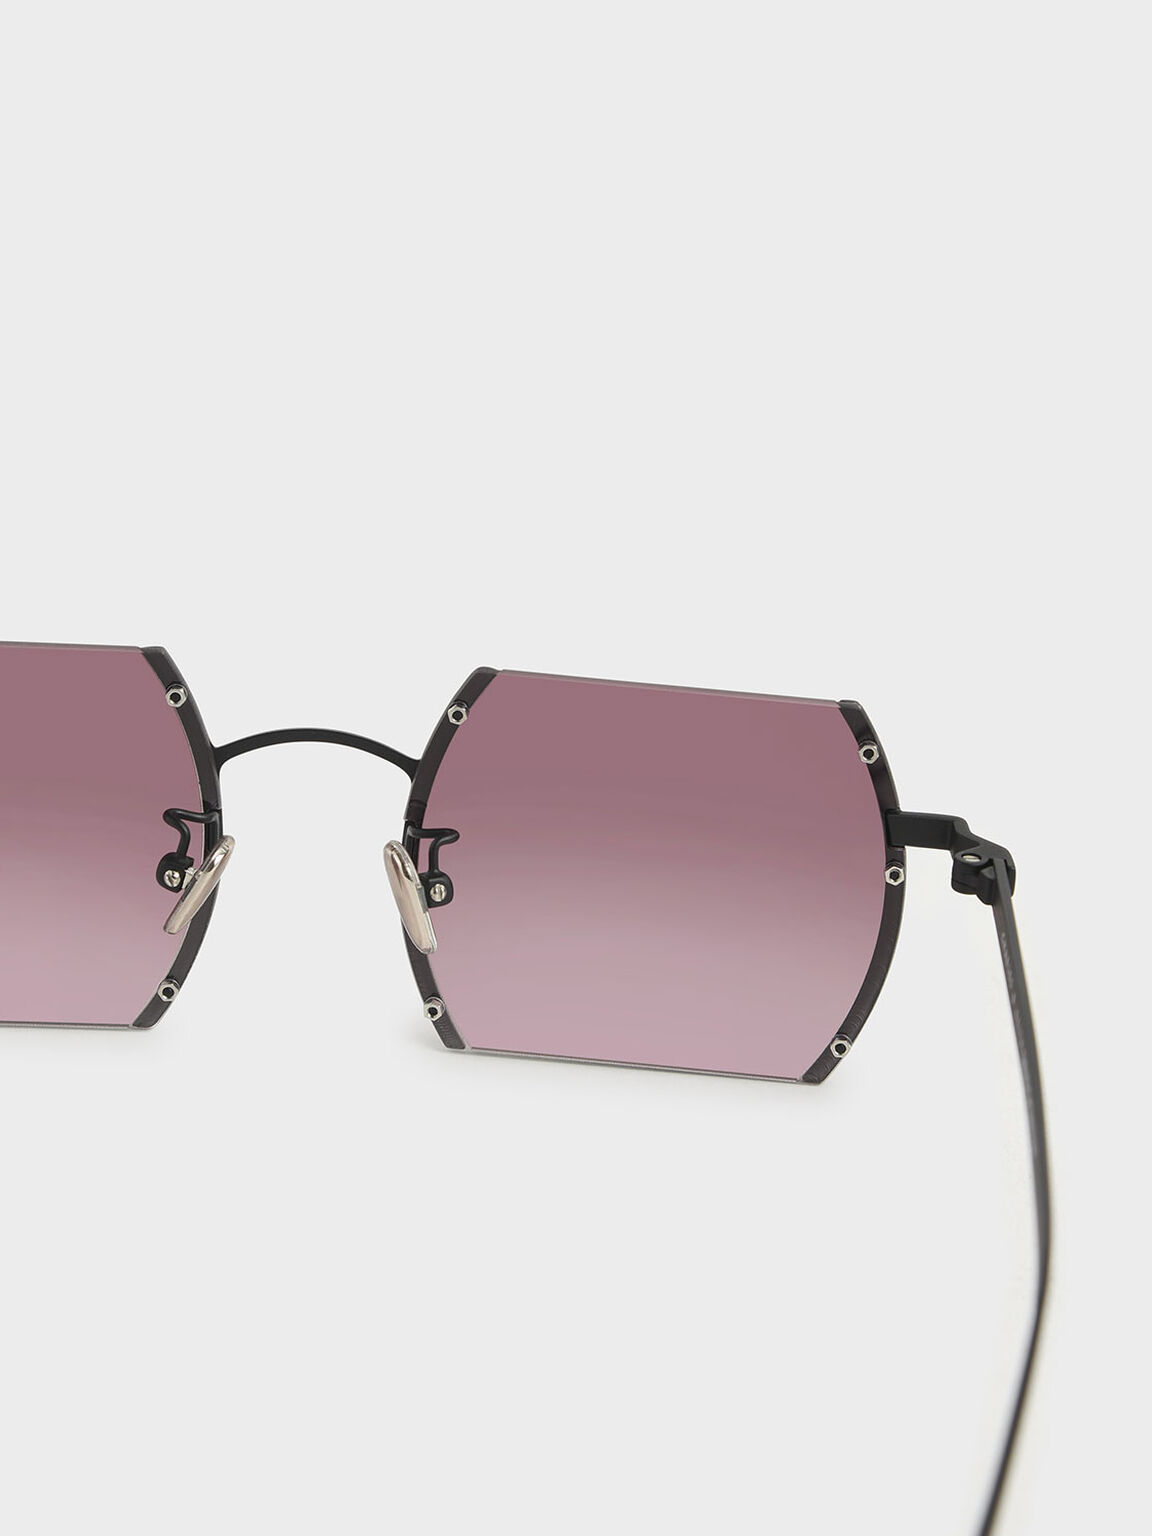 Cut-Off Frame Round Sunglasses, Burgundy, hi-res